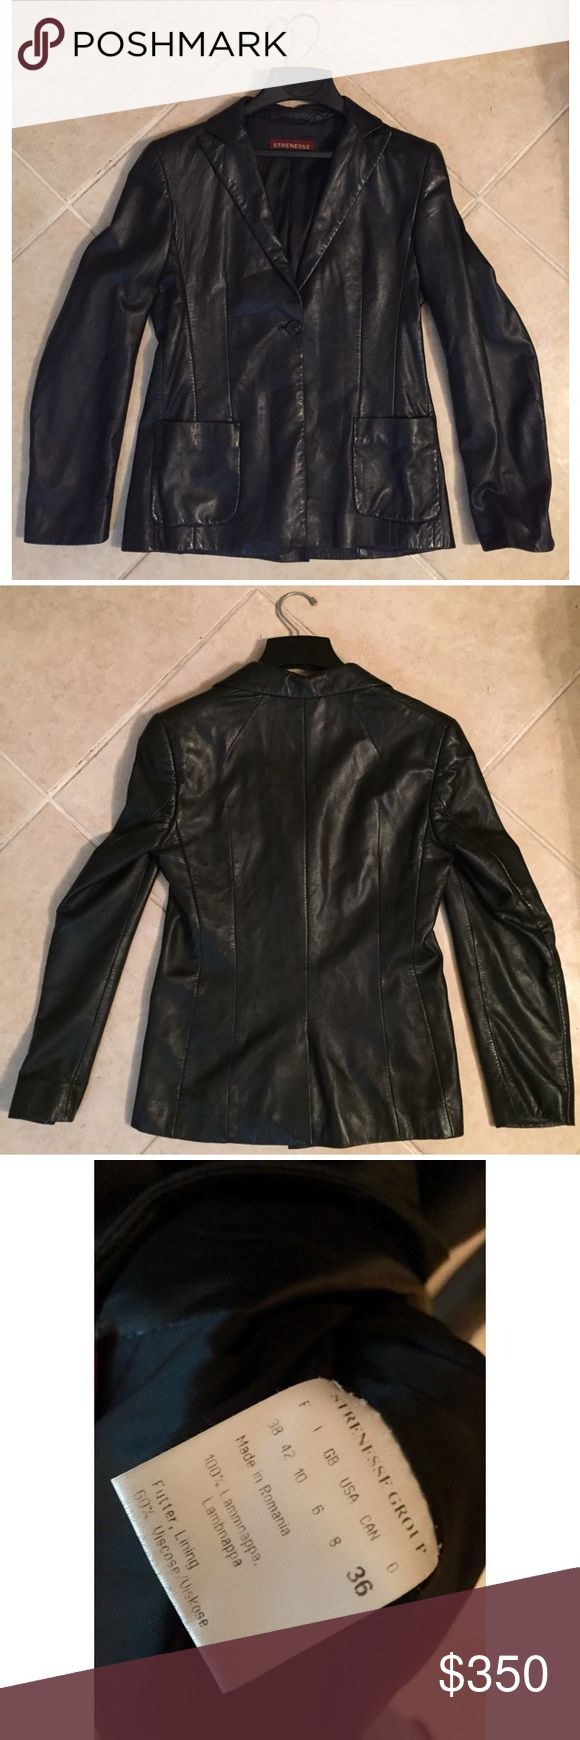 STRENESSE Black Lambnappa Leather Biker Jacket 100% Lambnappa Leather, Size US 6  Single button closure, 2 front pockets, and figure flattering stitching in front & back of jacket. Has only been worn a few times, some creasing in the leather overall but just needs a good visit to the leather specialist/cleaner to look as good as new!  German design aiming for the best possible quality and cut. The majority of production is based in Europe, with fabrics primarily manufactured in Italy…